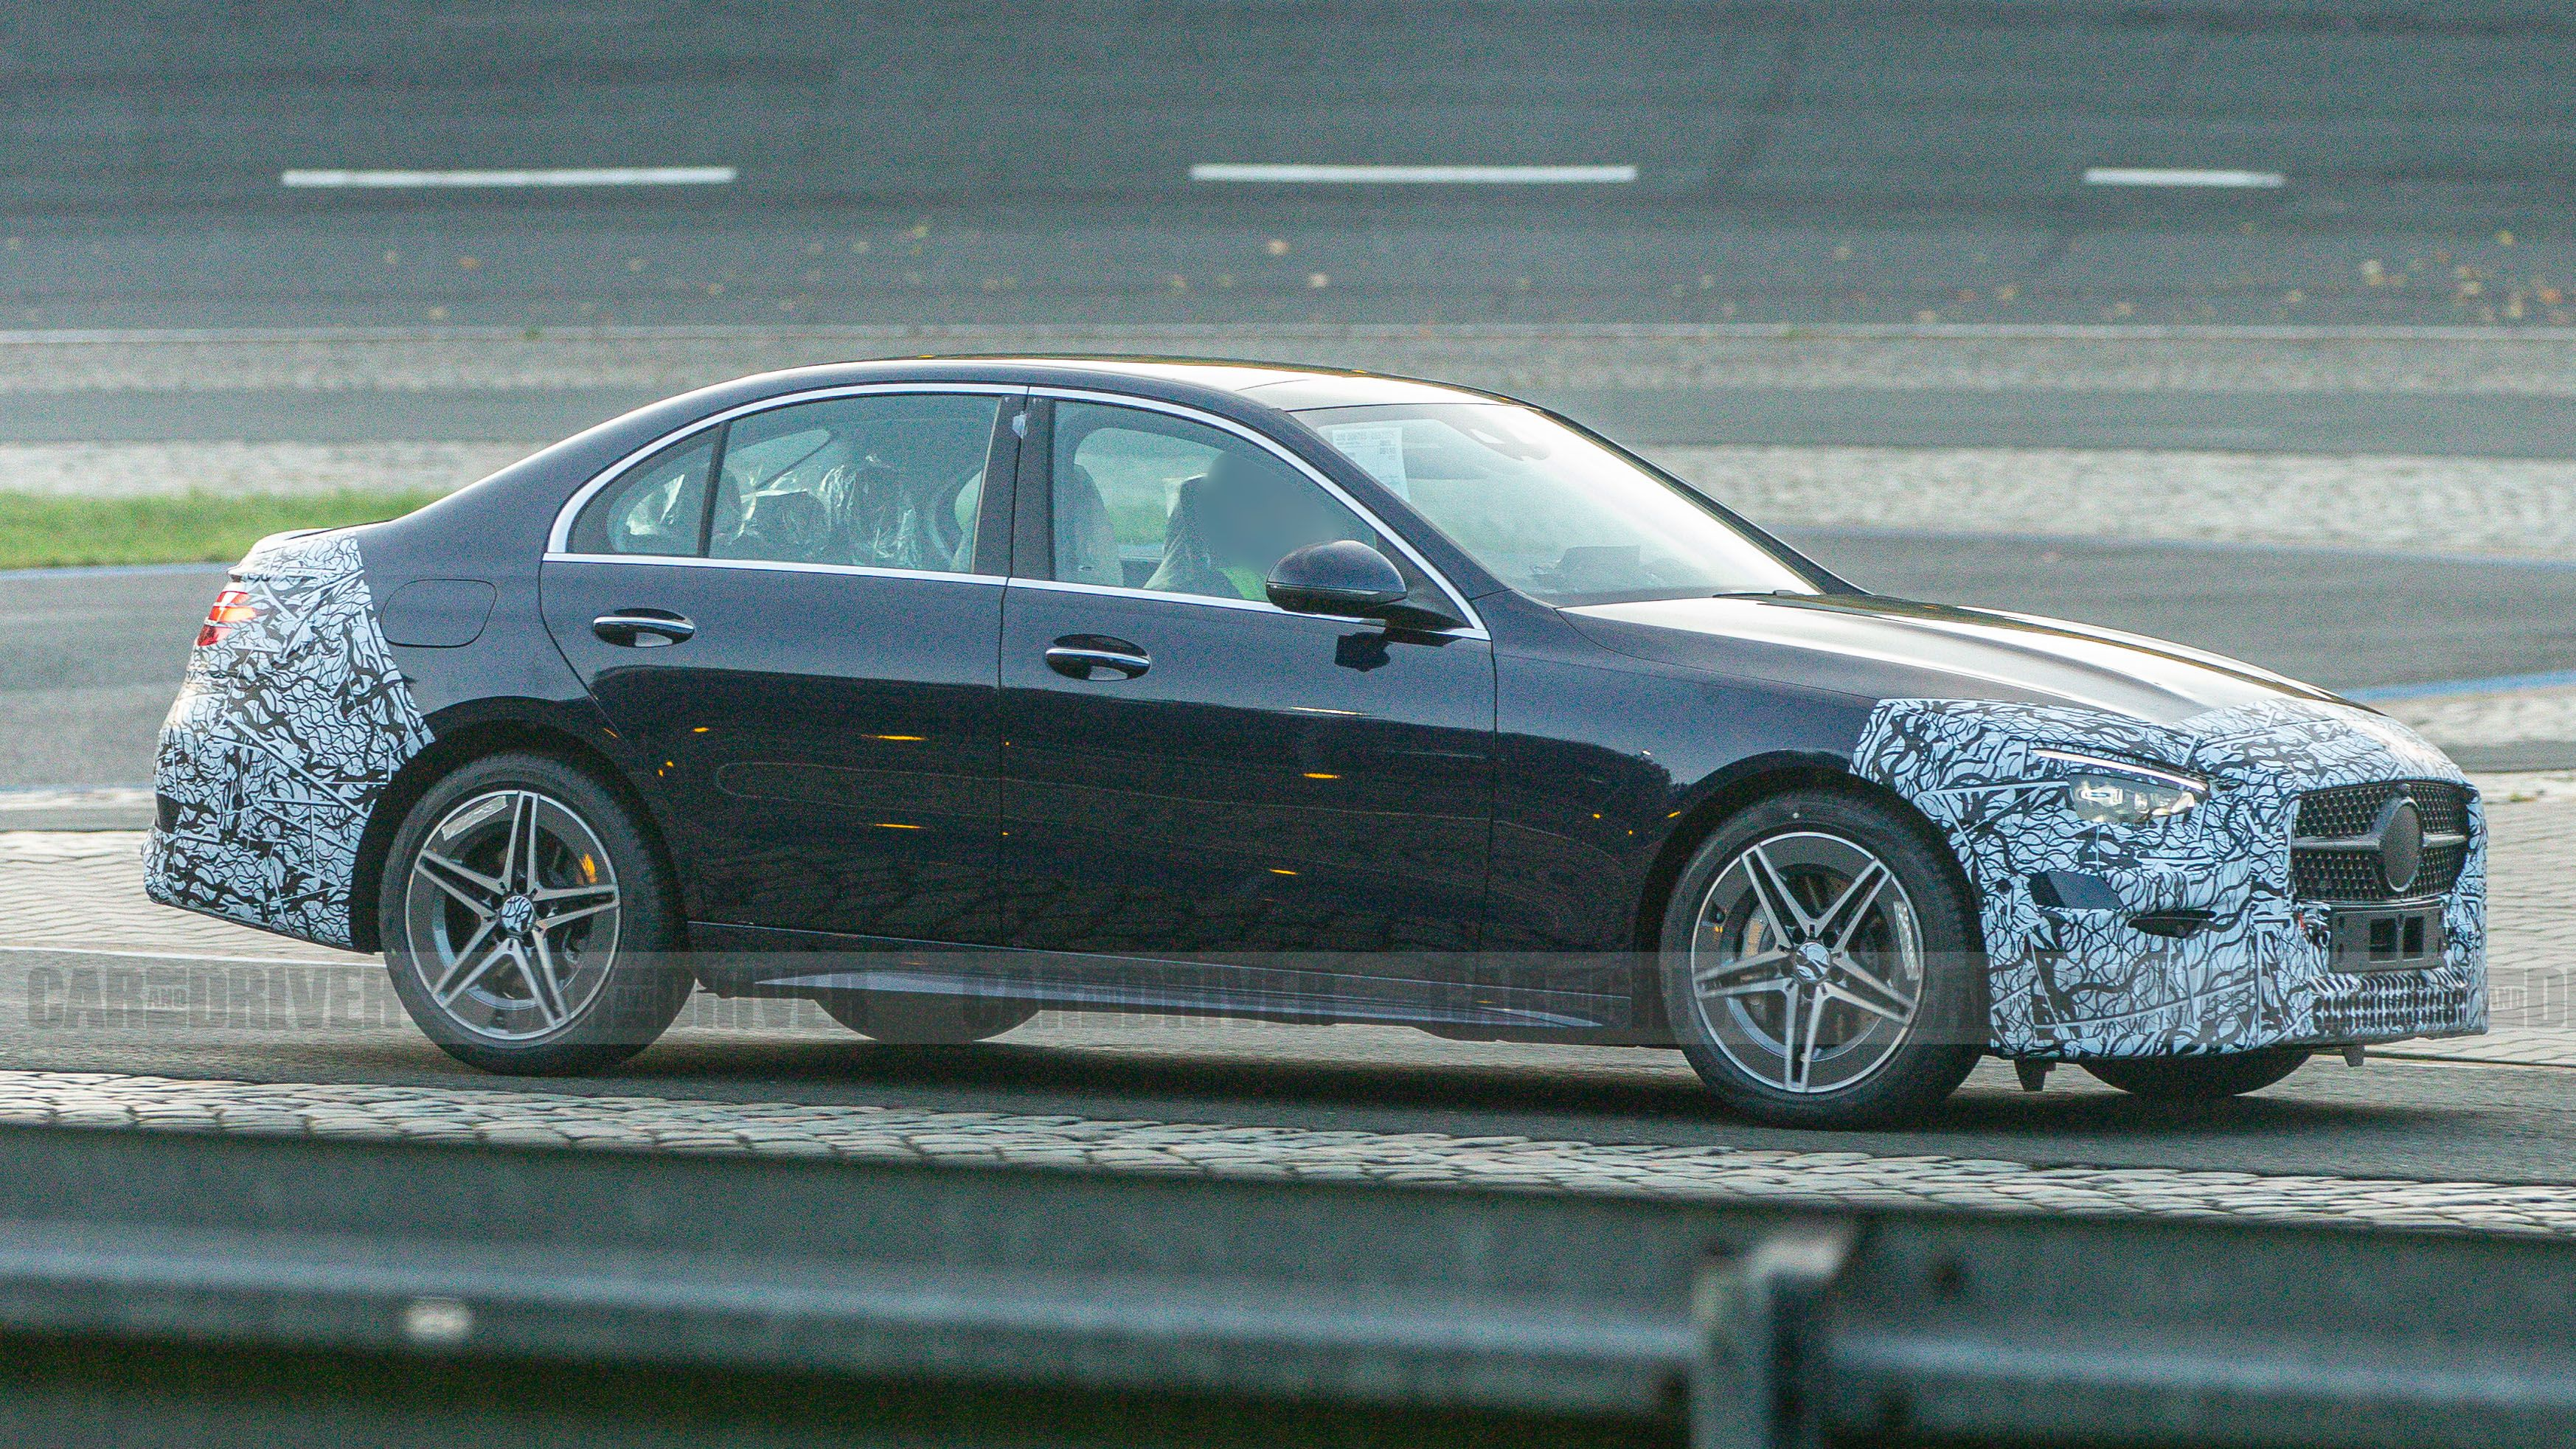 5 Mercedes-Benz C-Class: What We Know So Far